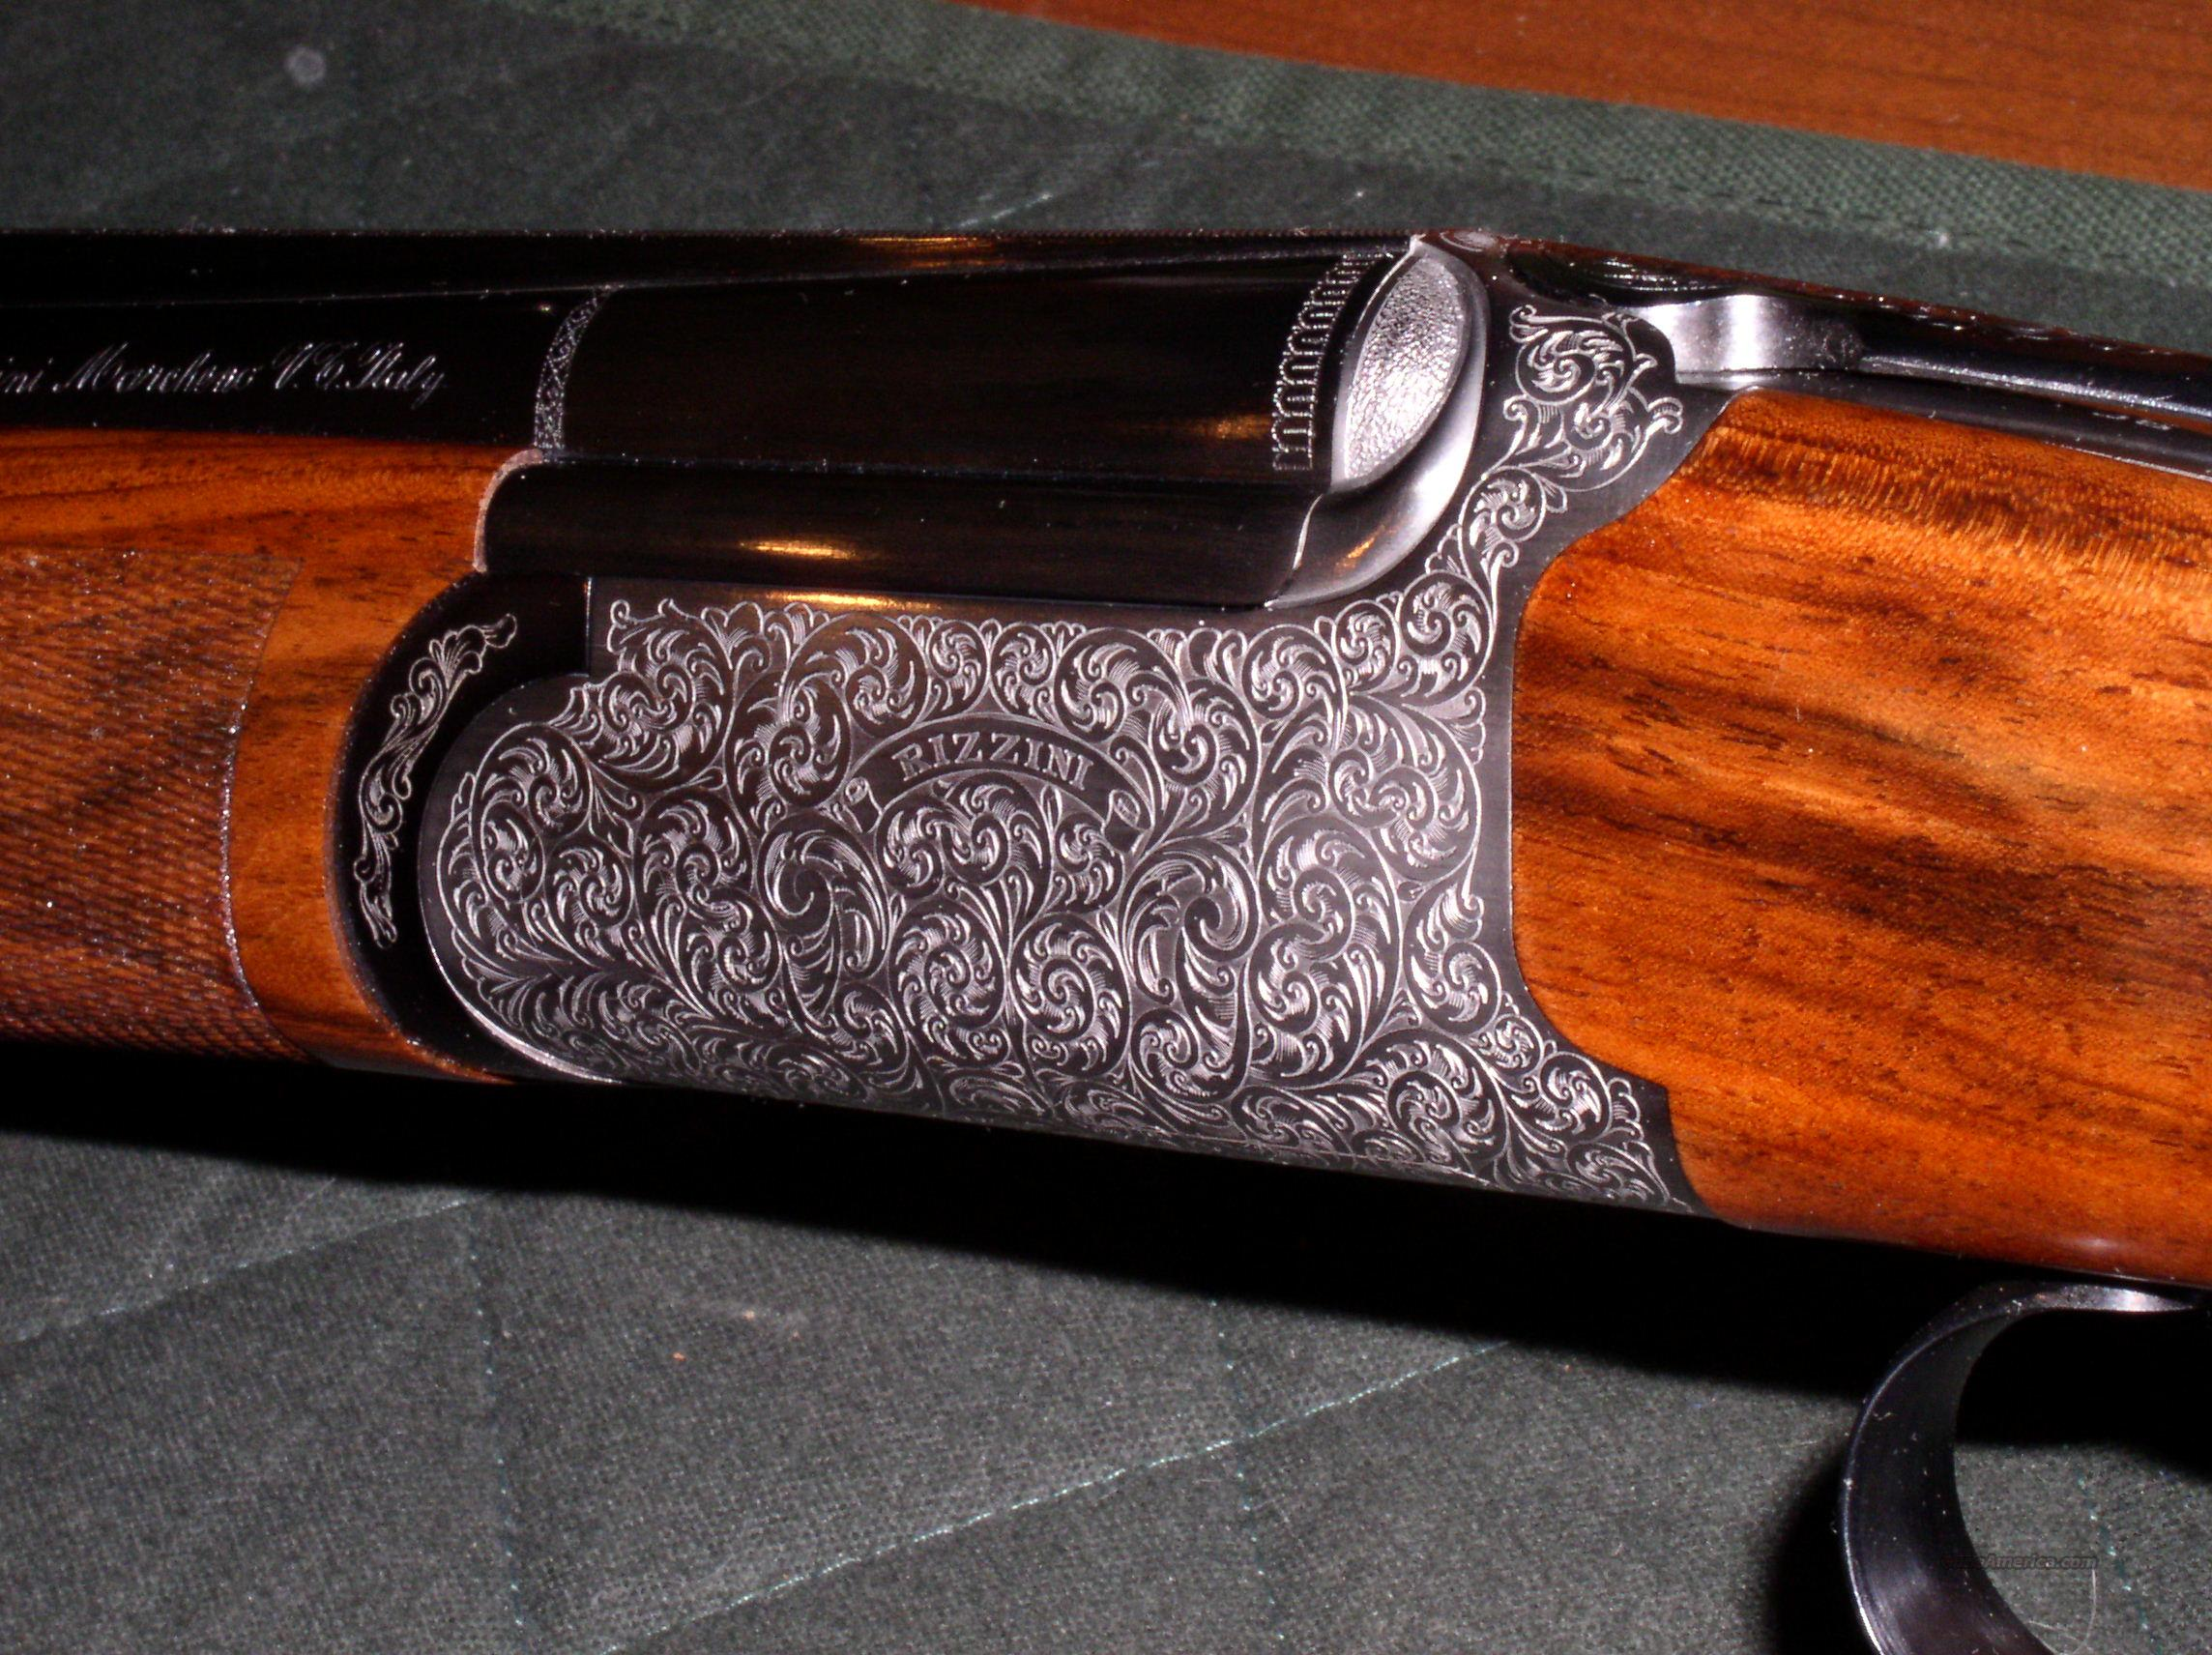 Rizzini Round Body EL Small Action  Guns > Shotguns > Rizzini Shotguns